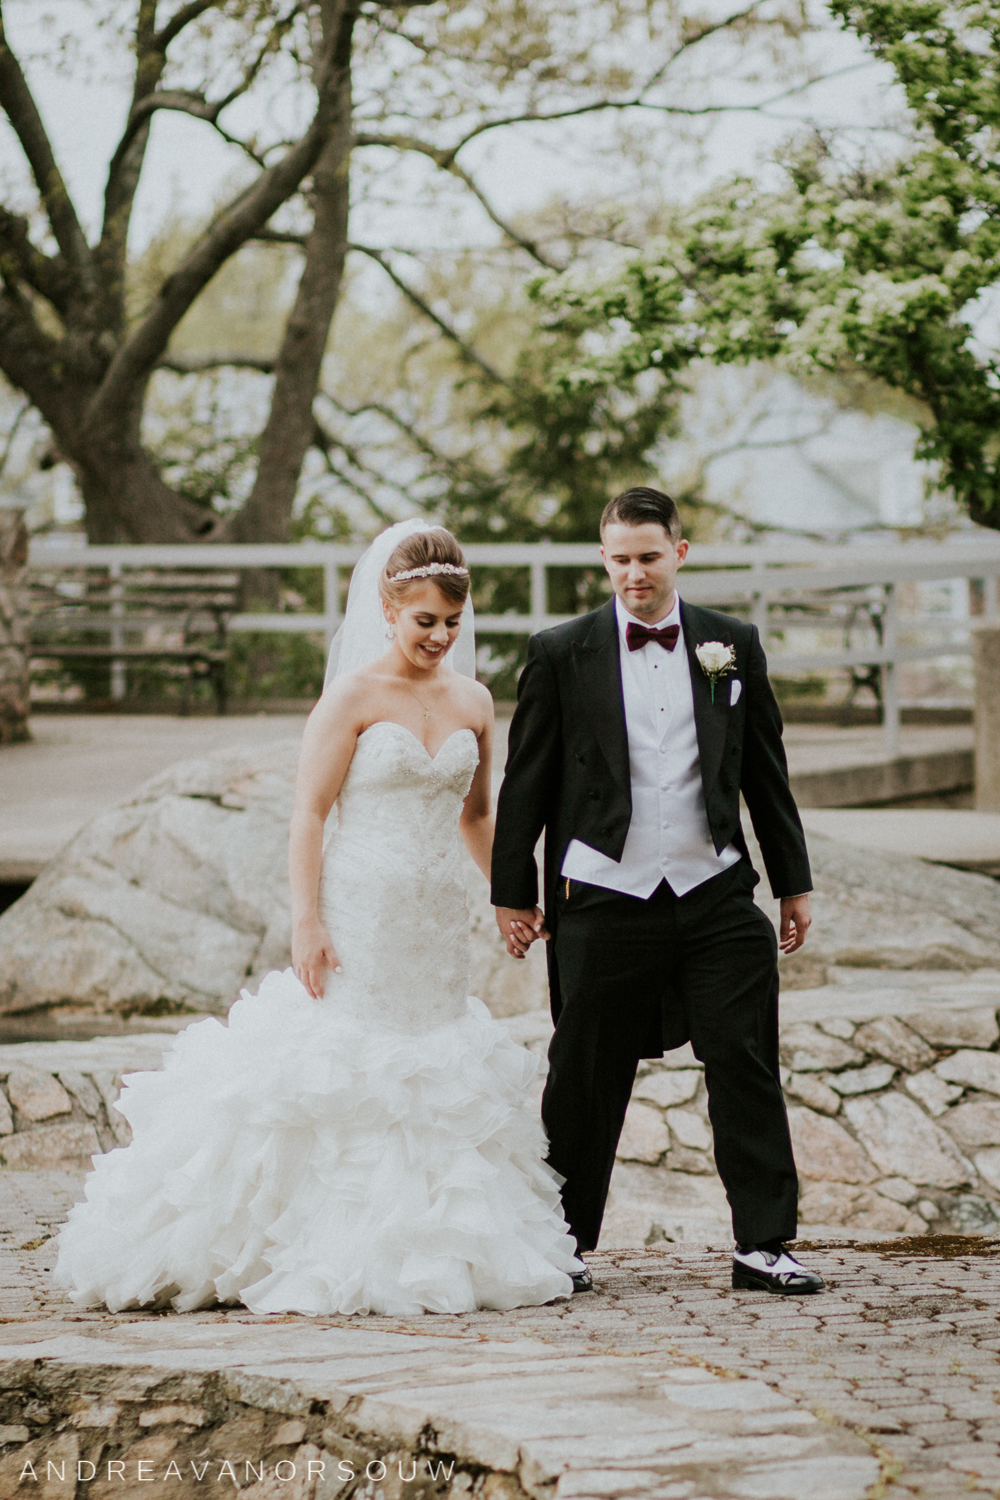 bride_and_groom_walking_portrait_session_wedding_day_connecticut_coast_guard_academy_new_england_rhode_island_photographer.jpg